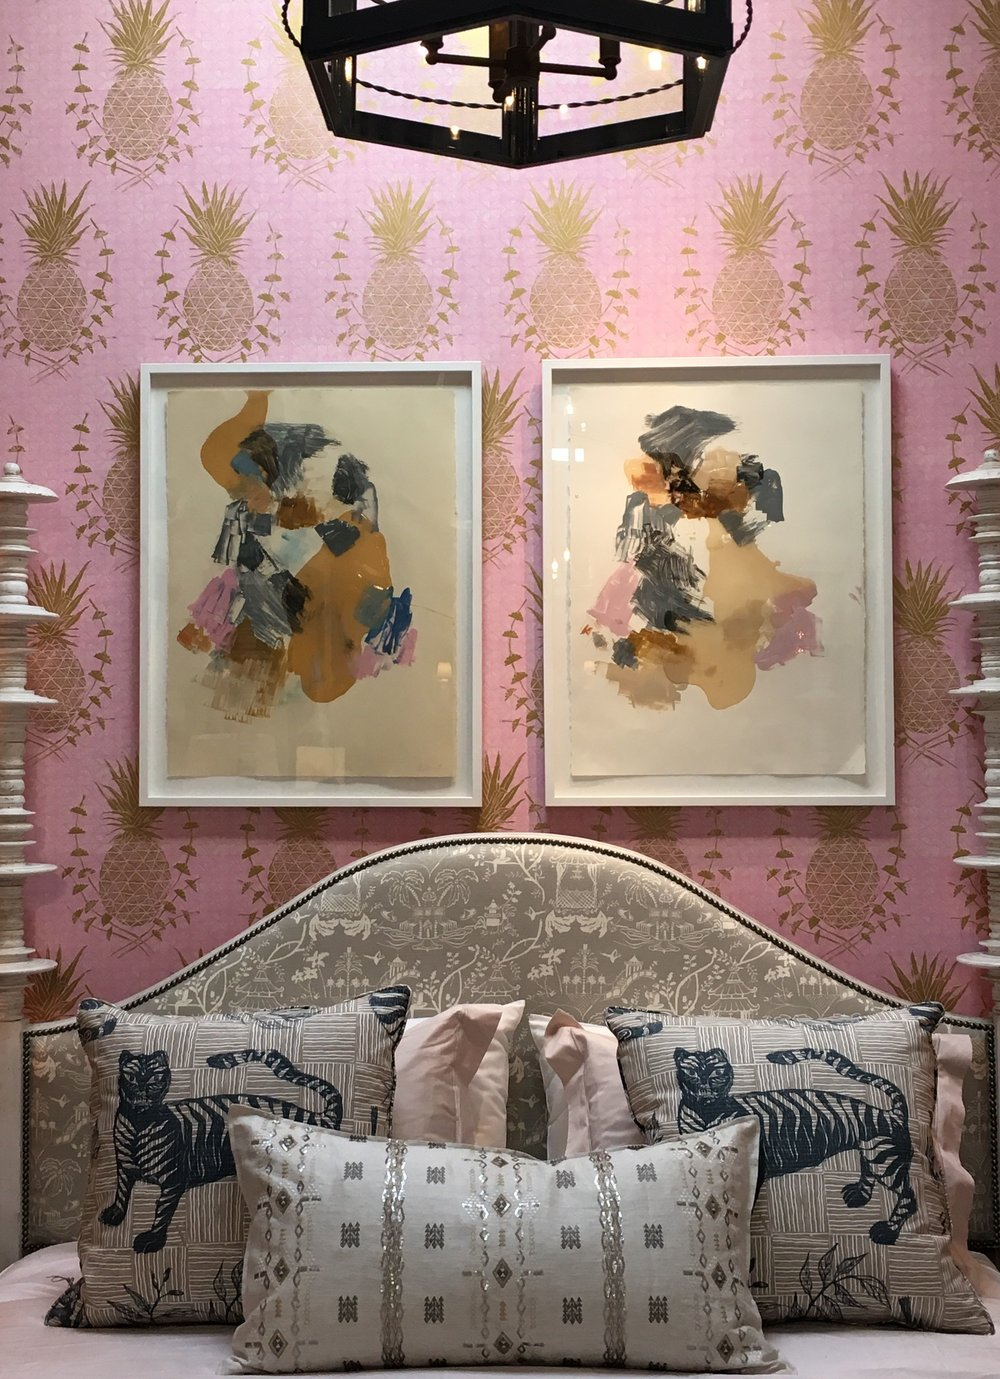 Tiger & Magpie Pillows in Deep Blue and Royal Pineapple Wallpaper in Pink at Harbinger Showroom